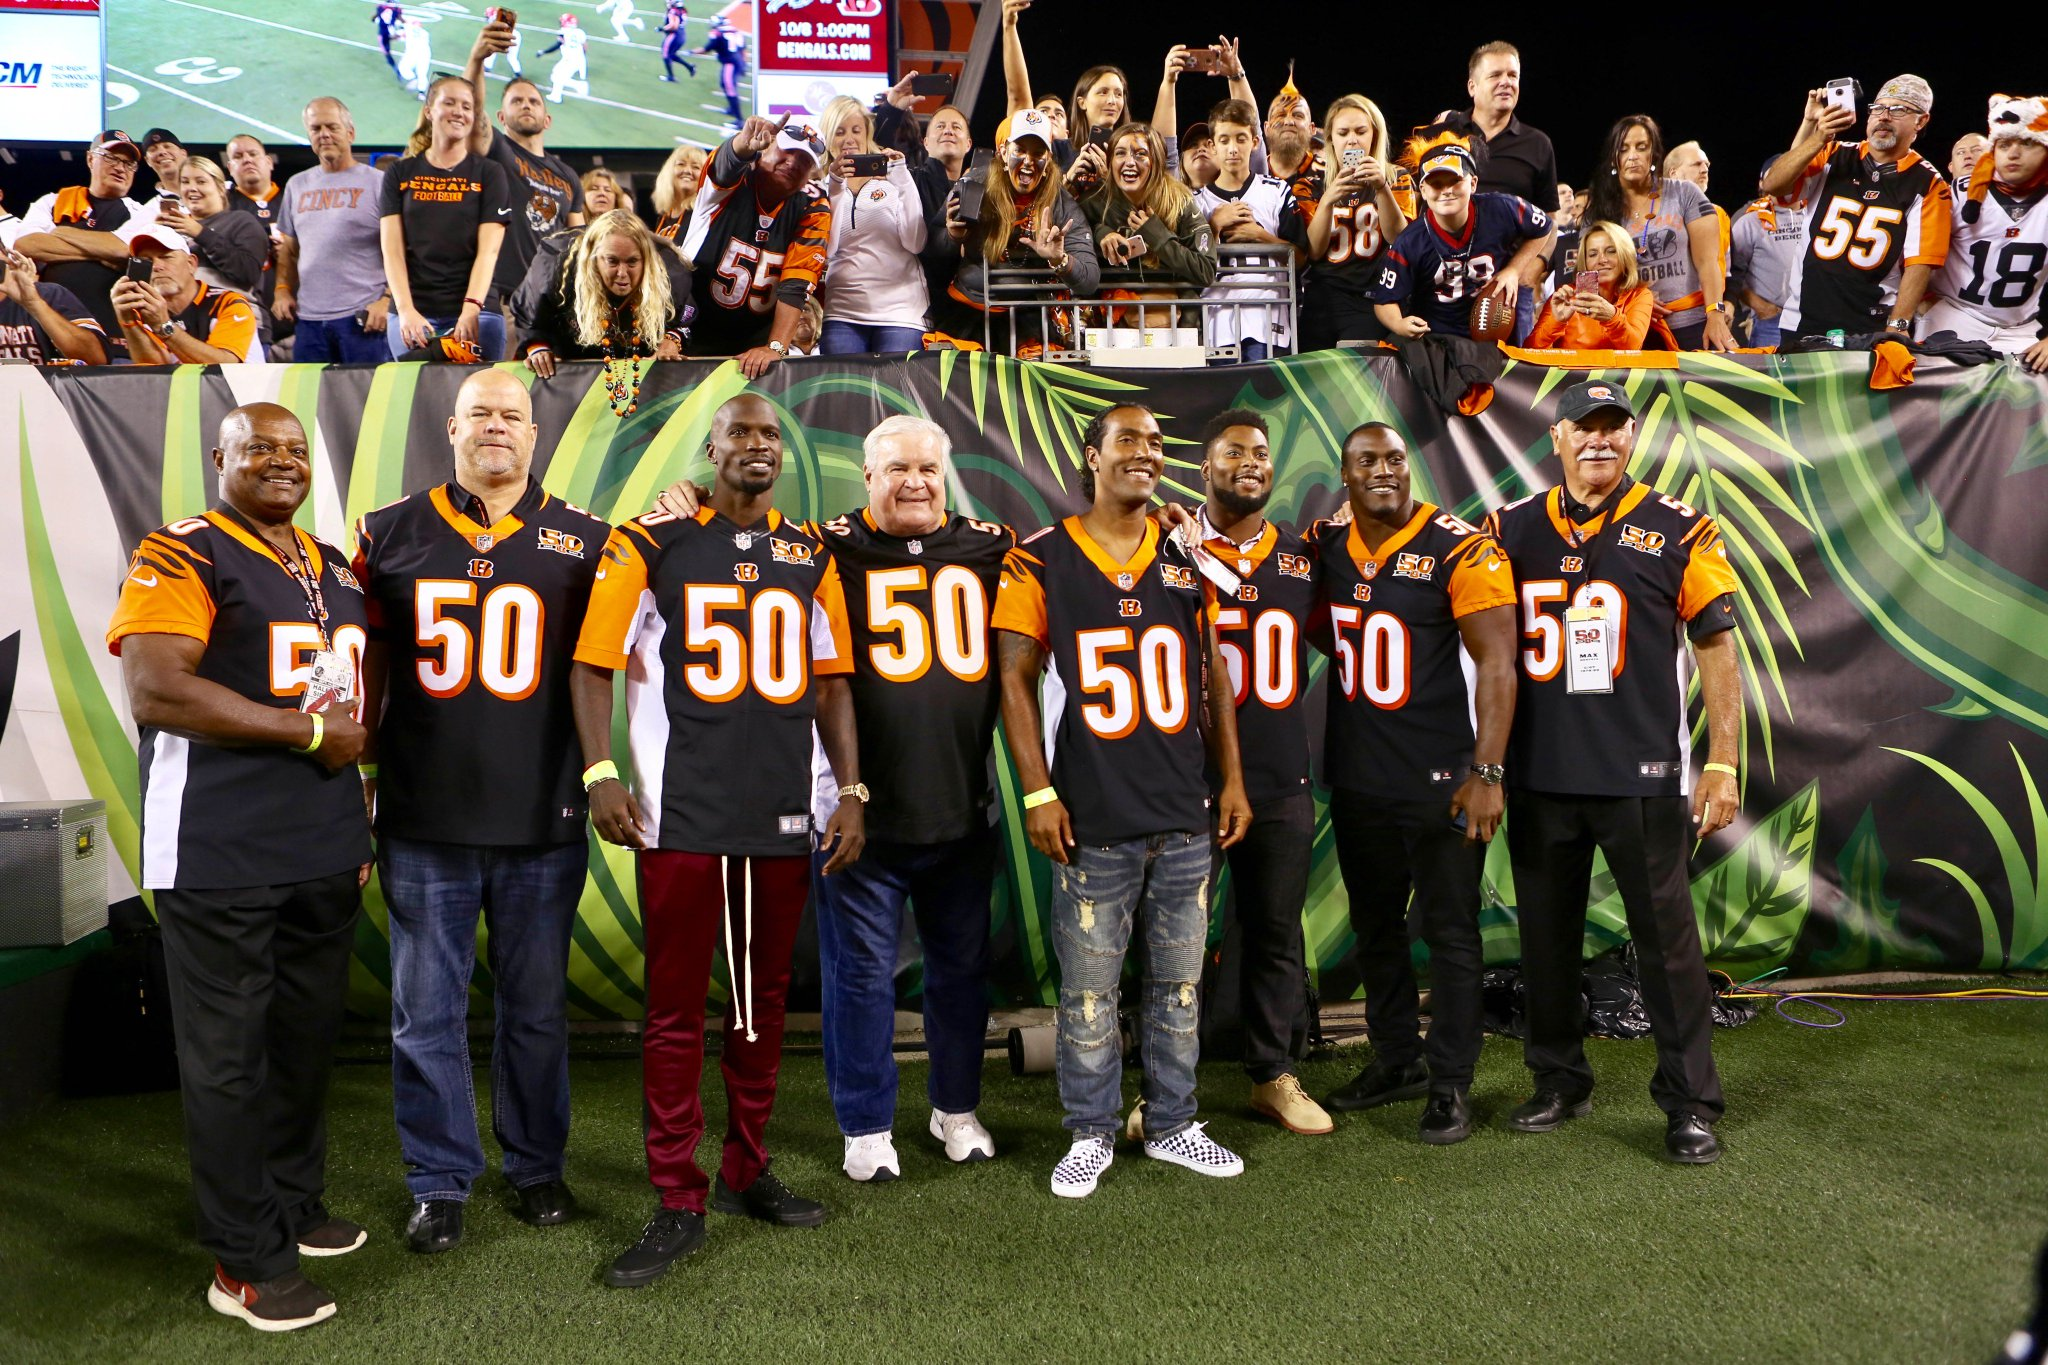 As part of our 50th Season, #Bengals Legends were honored at halftime.  #HOUvsCIN #Bengals50 https://t.co/c5bb3CBtkQ